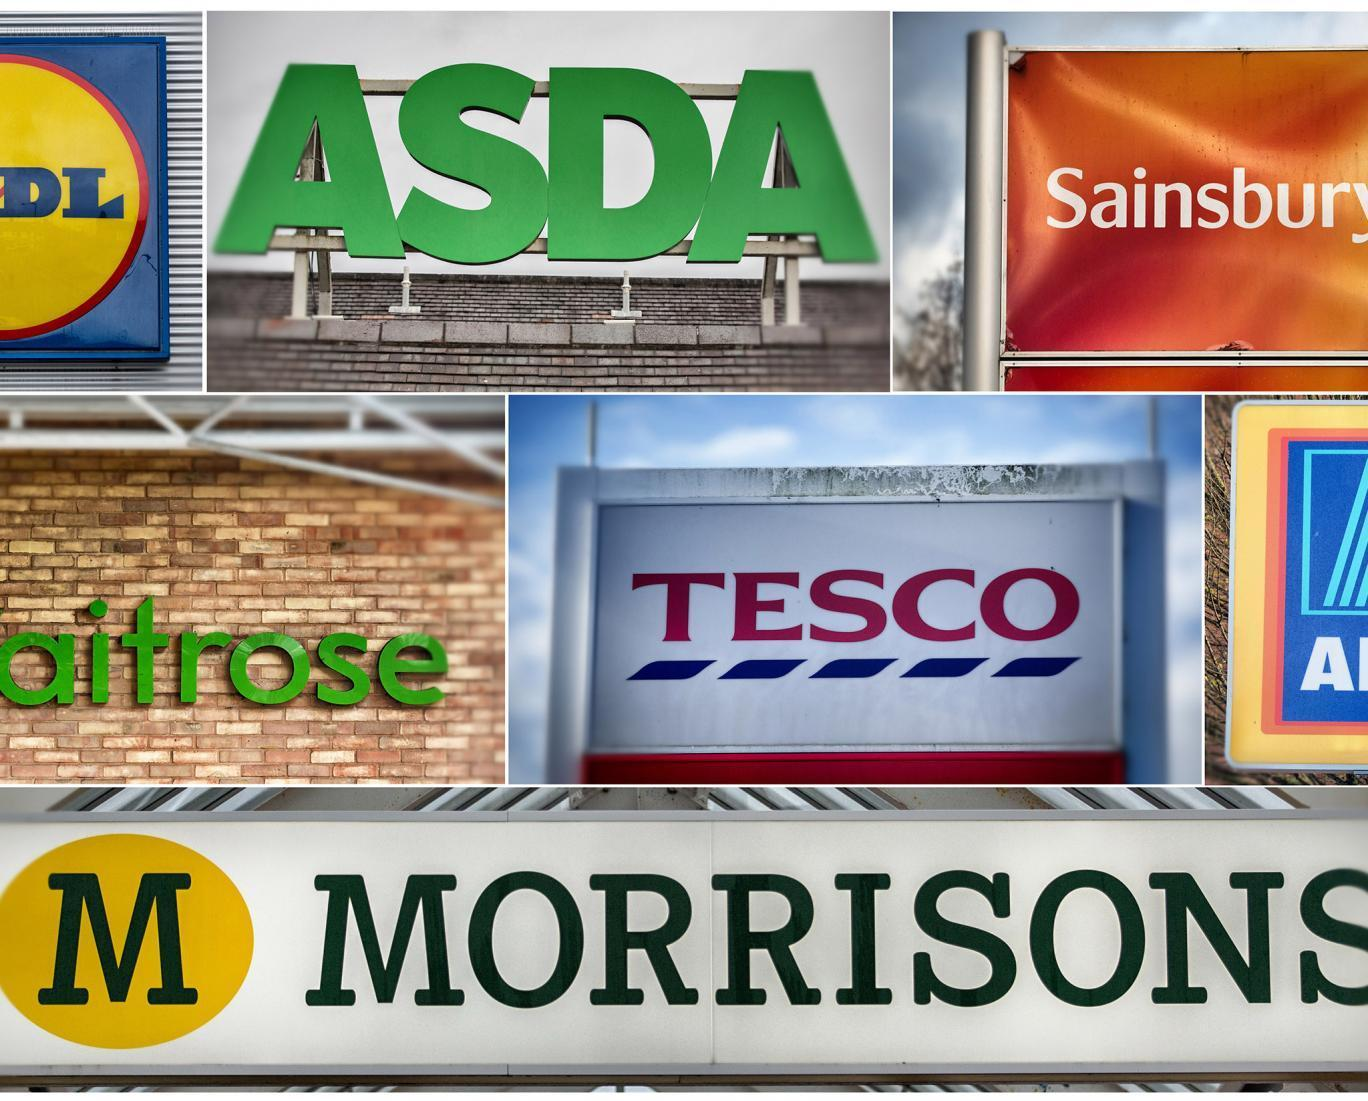 August bank holiday supermarket opening times: When are Tesco, Asda, Lidl, Sainsbury's and